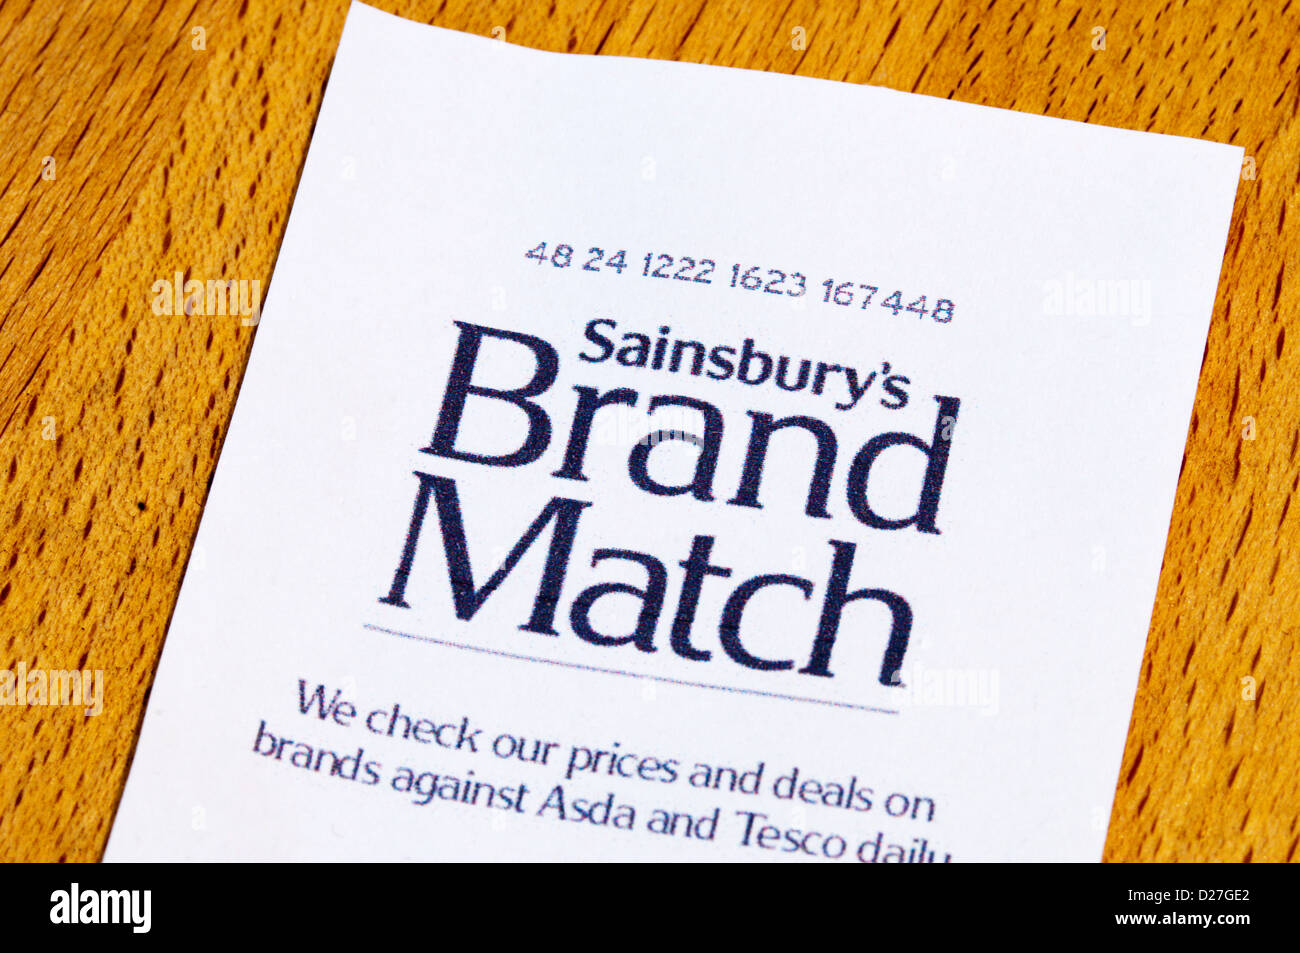 Sainsbury's Brand Match checks prices against Asda and Tesco to ensure that their prices are comparable. - Stock Image